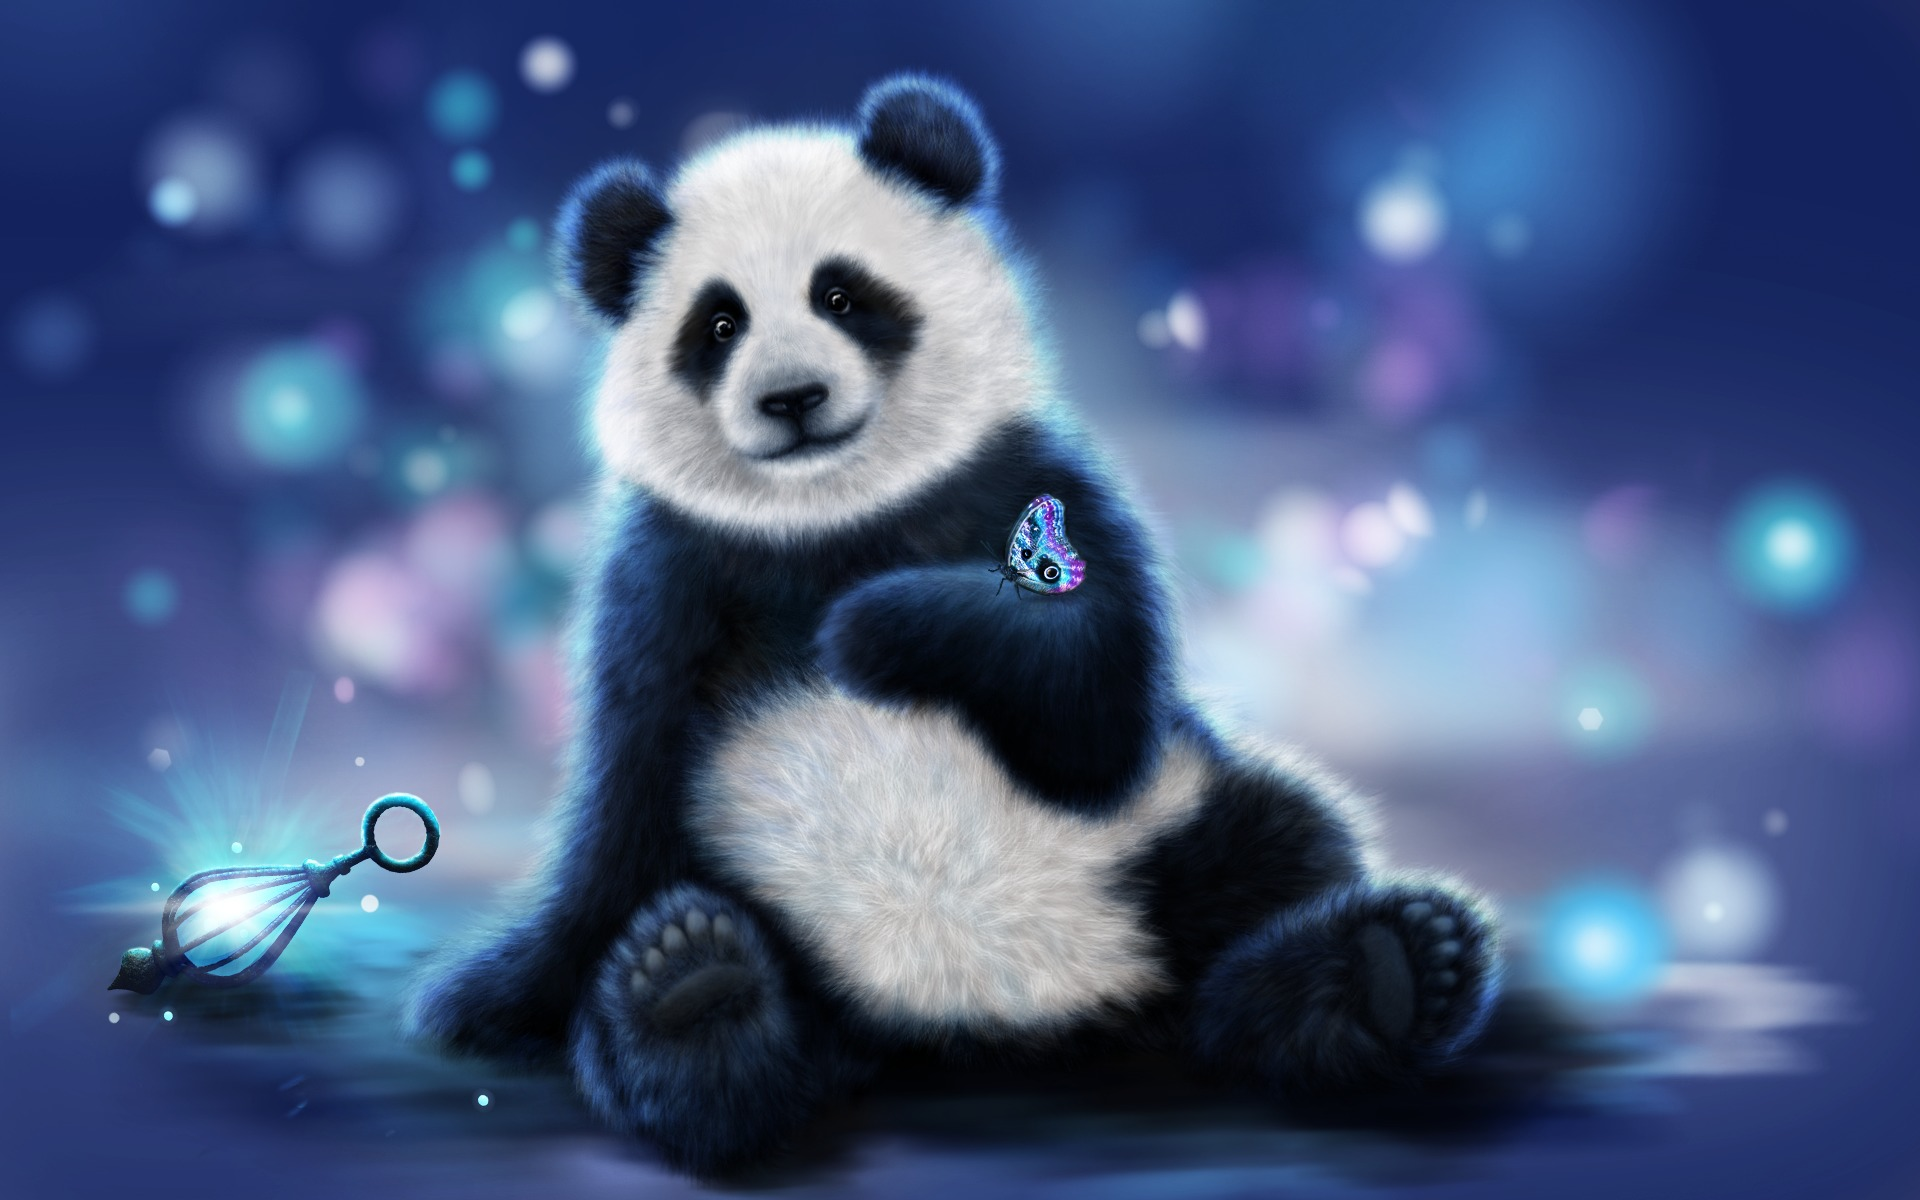 Cute Panda And Butterfly HD Wallpaper 1920x1200